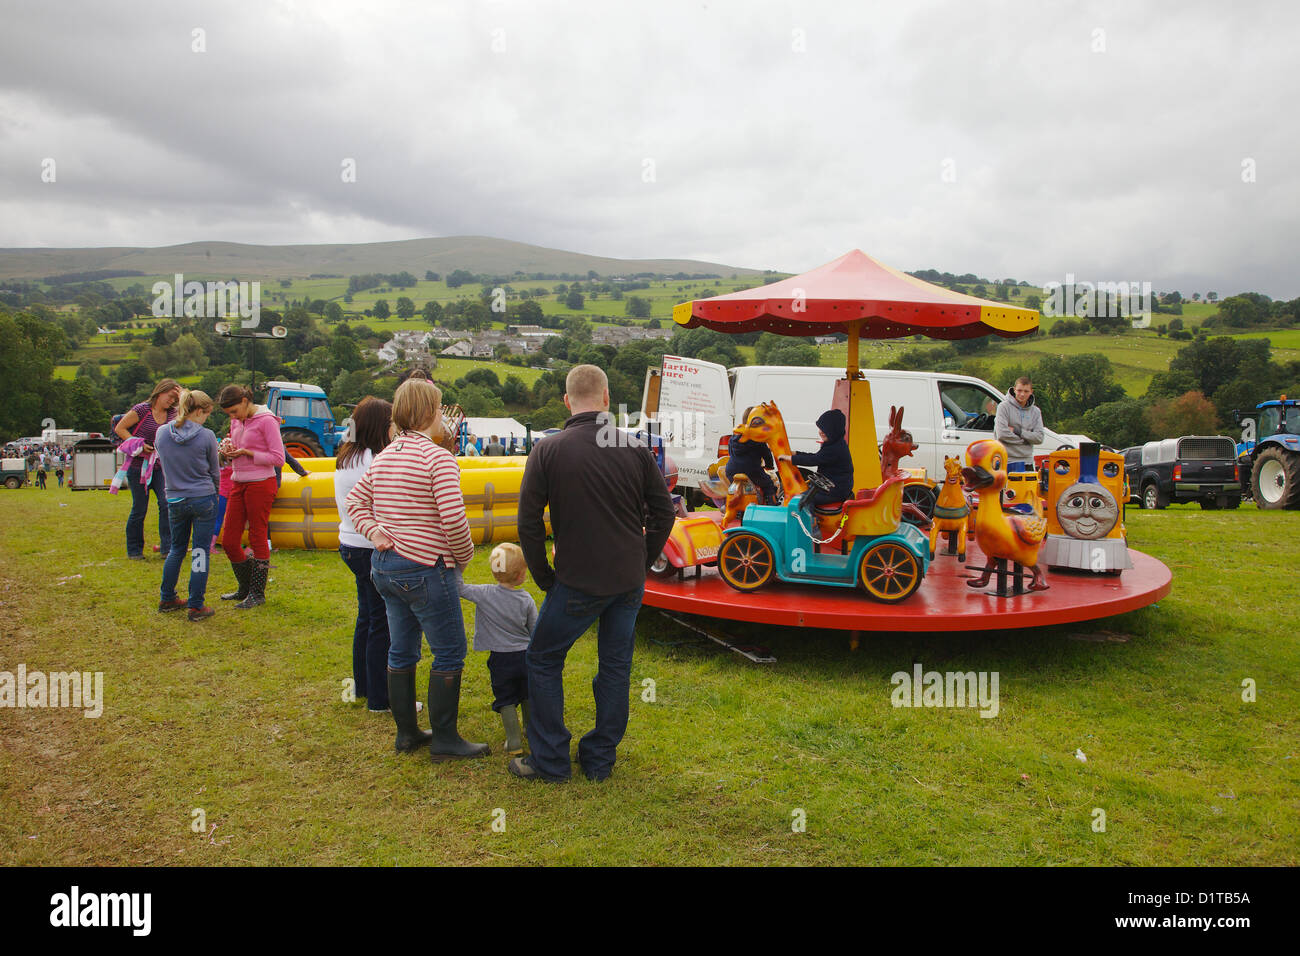 Families enjoyingt fun fair at Hesket Newmarket Agricultural Society Show Cumbria, England. United Kingdom,Great - Stock Image